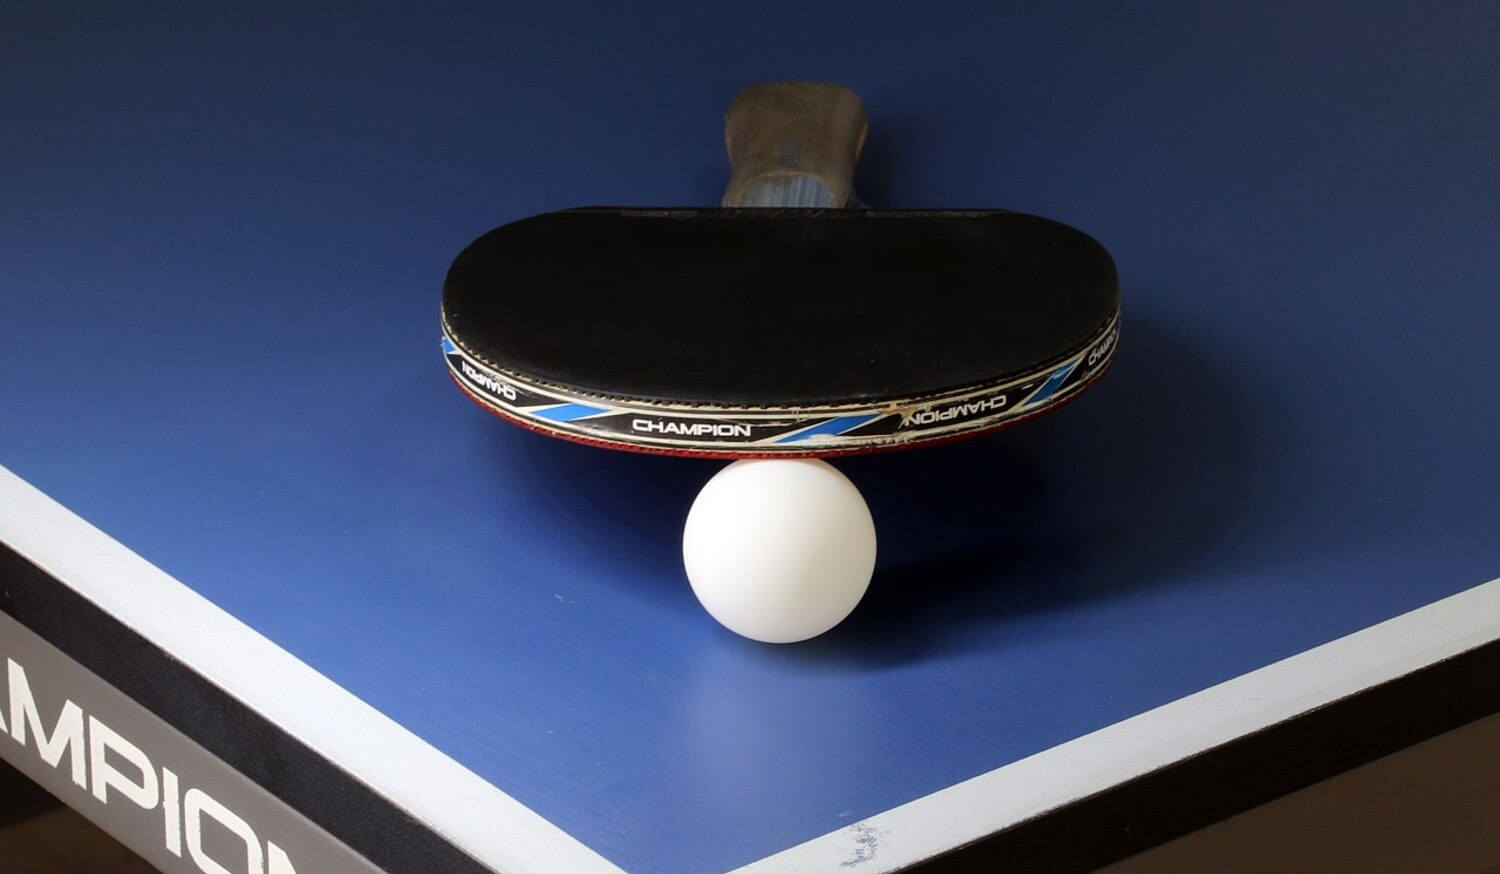 Improve Your Table Tennis Skills